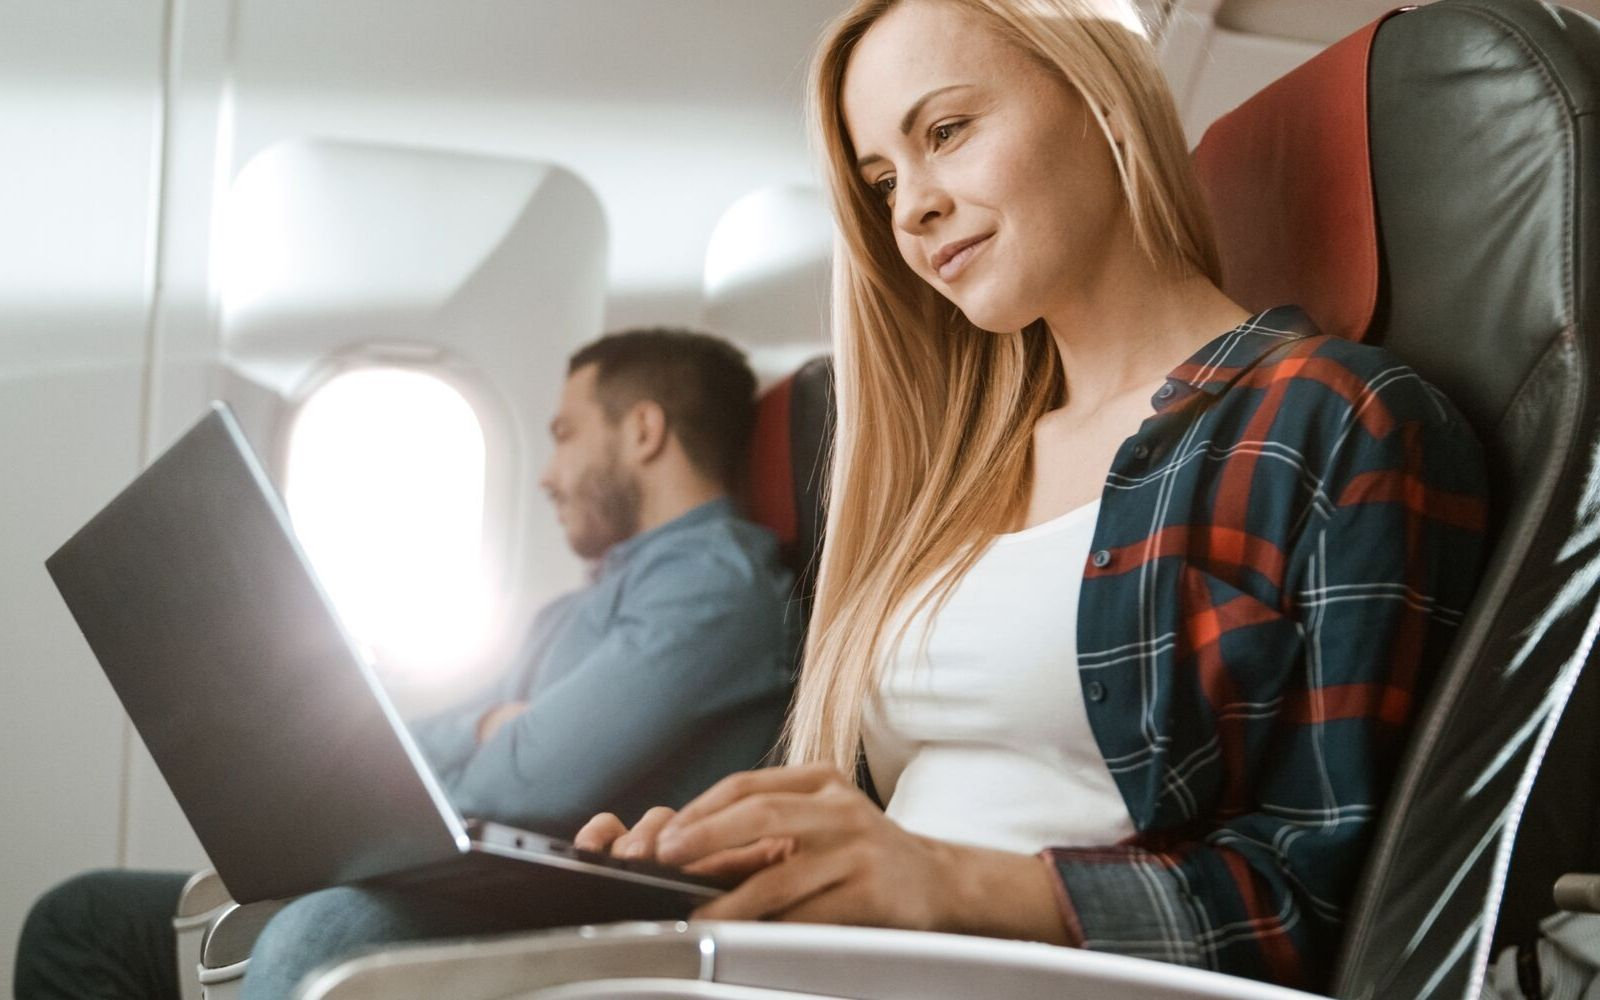 How to Pass Time on a Long Flight